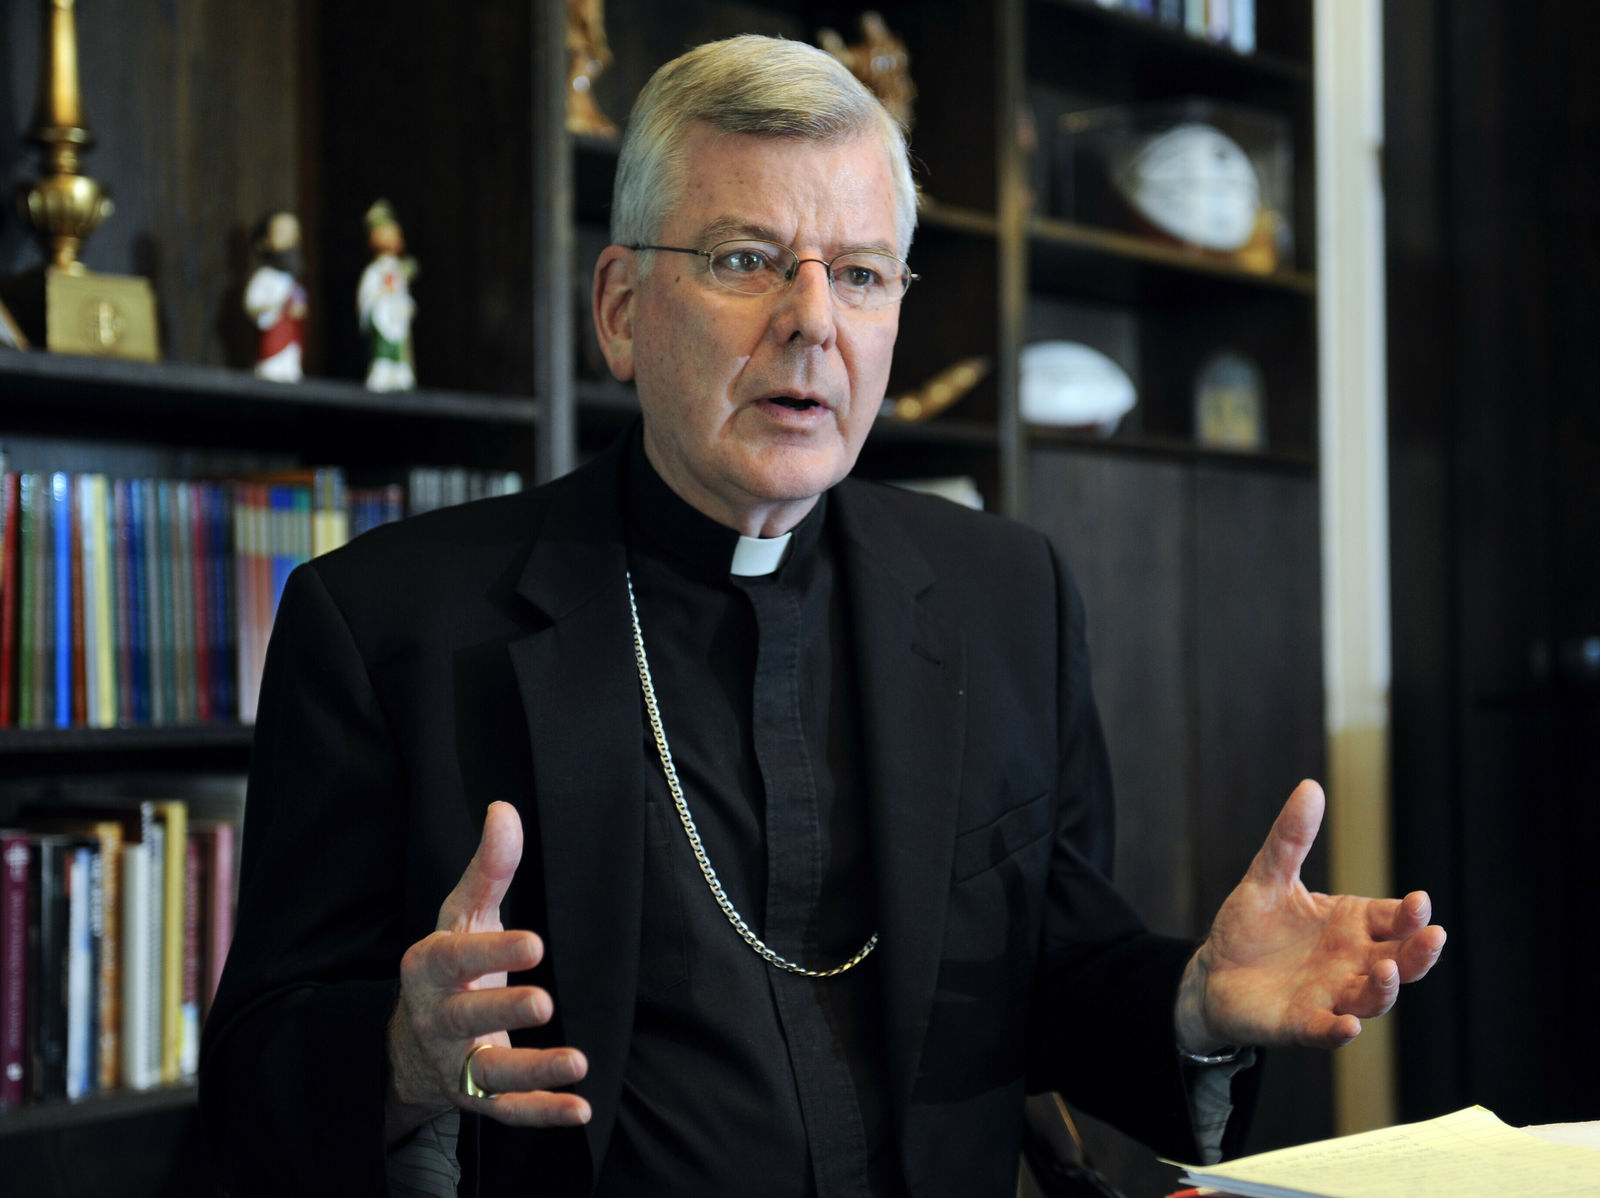 FILE - In this July 30, 2014, file photo, St. Paul-Minneapolis Archbishop John Nienstedt speaks at his office in St. Paul, Minn. (AP Photo/Craig Lassig, File)